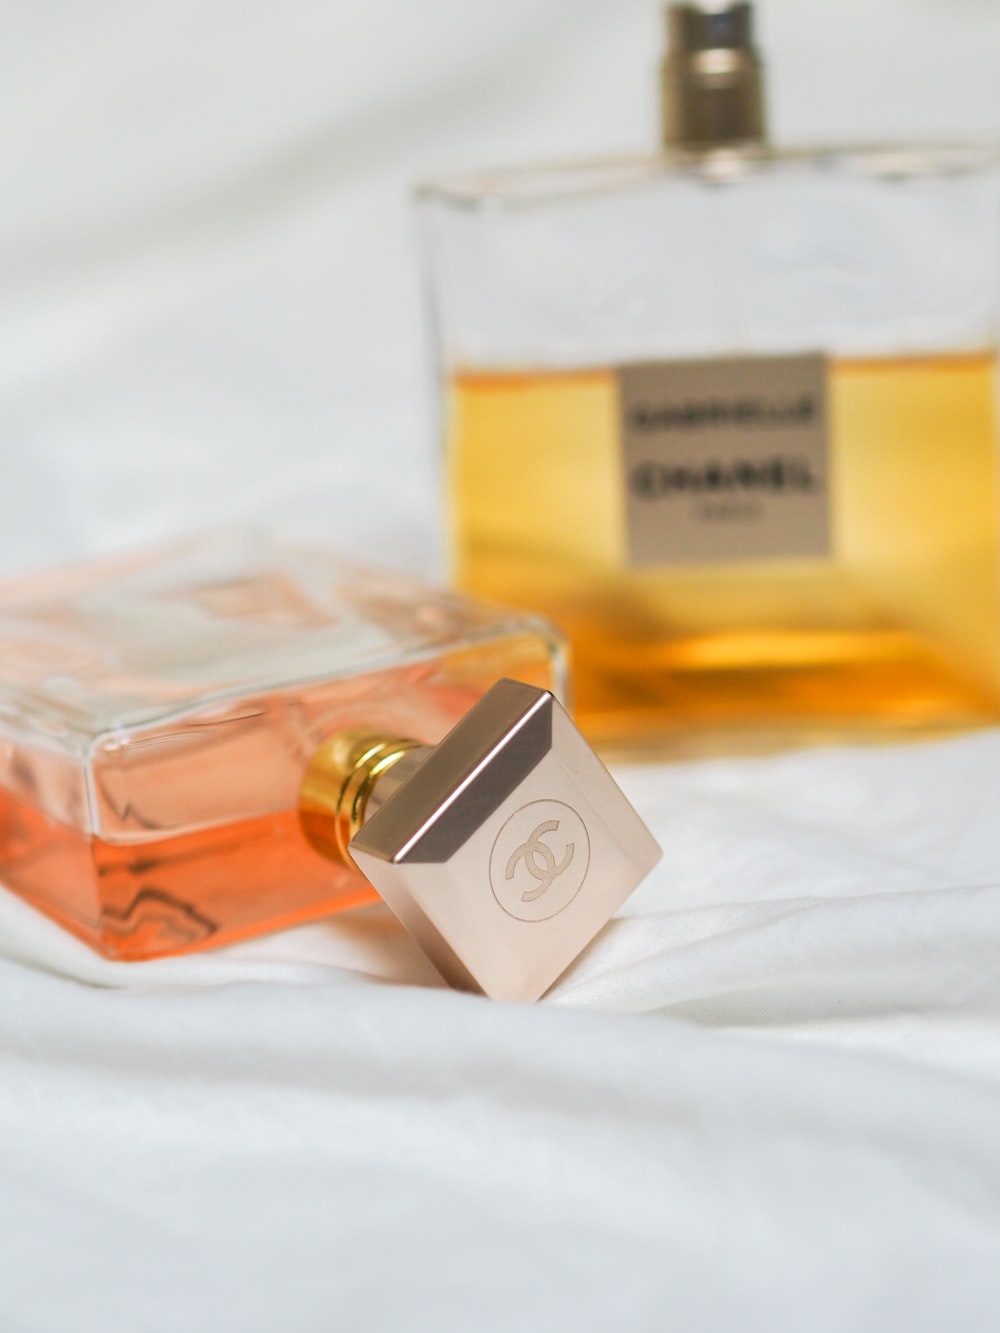 gold and silver perfume bottle on white textile